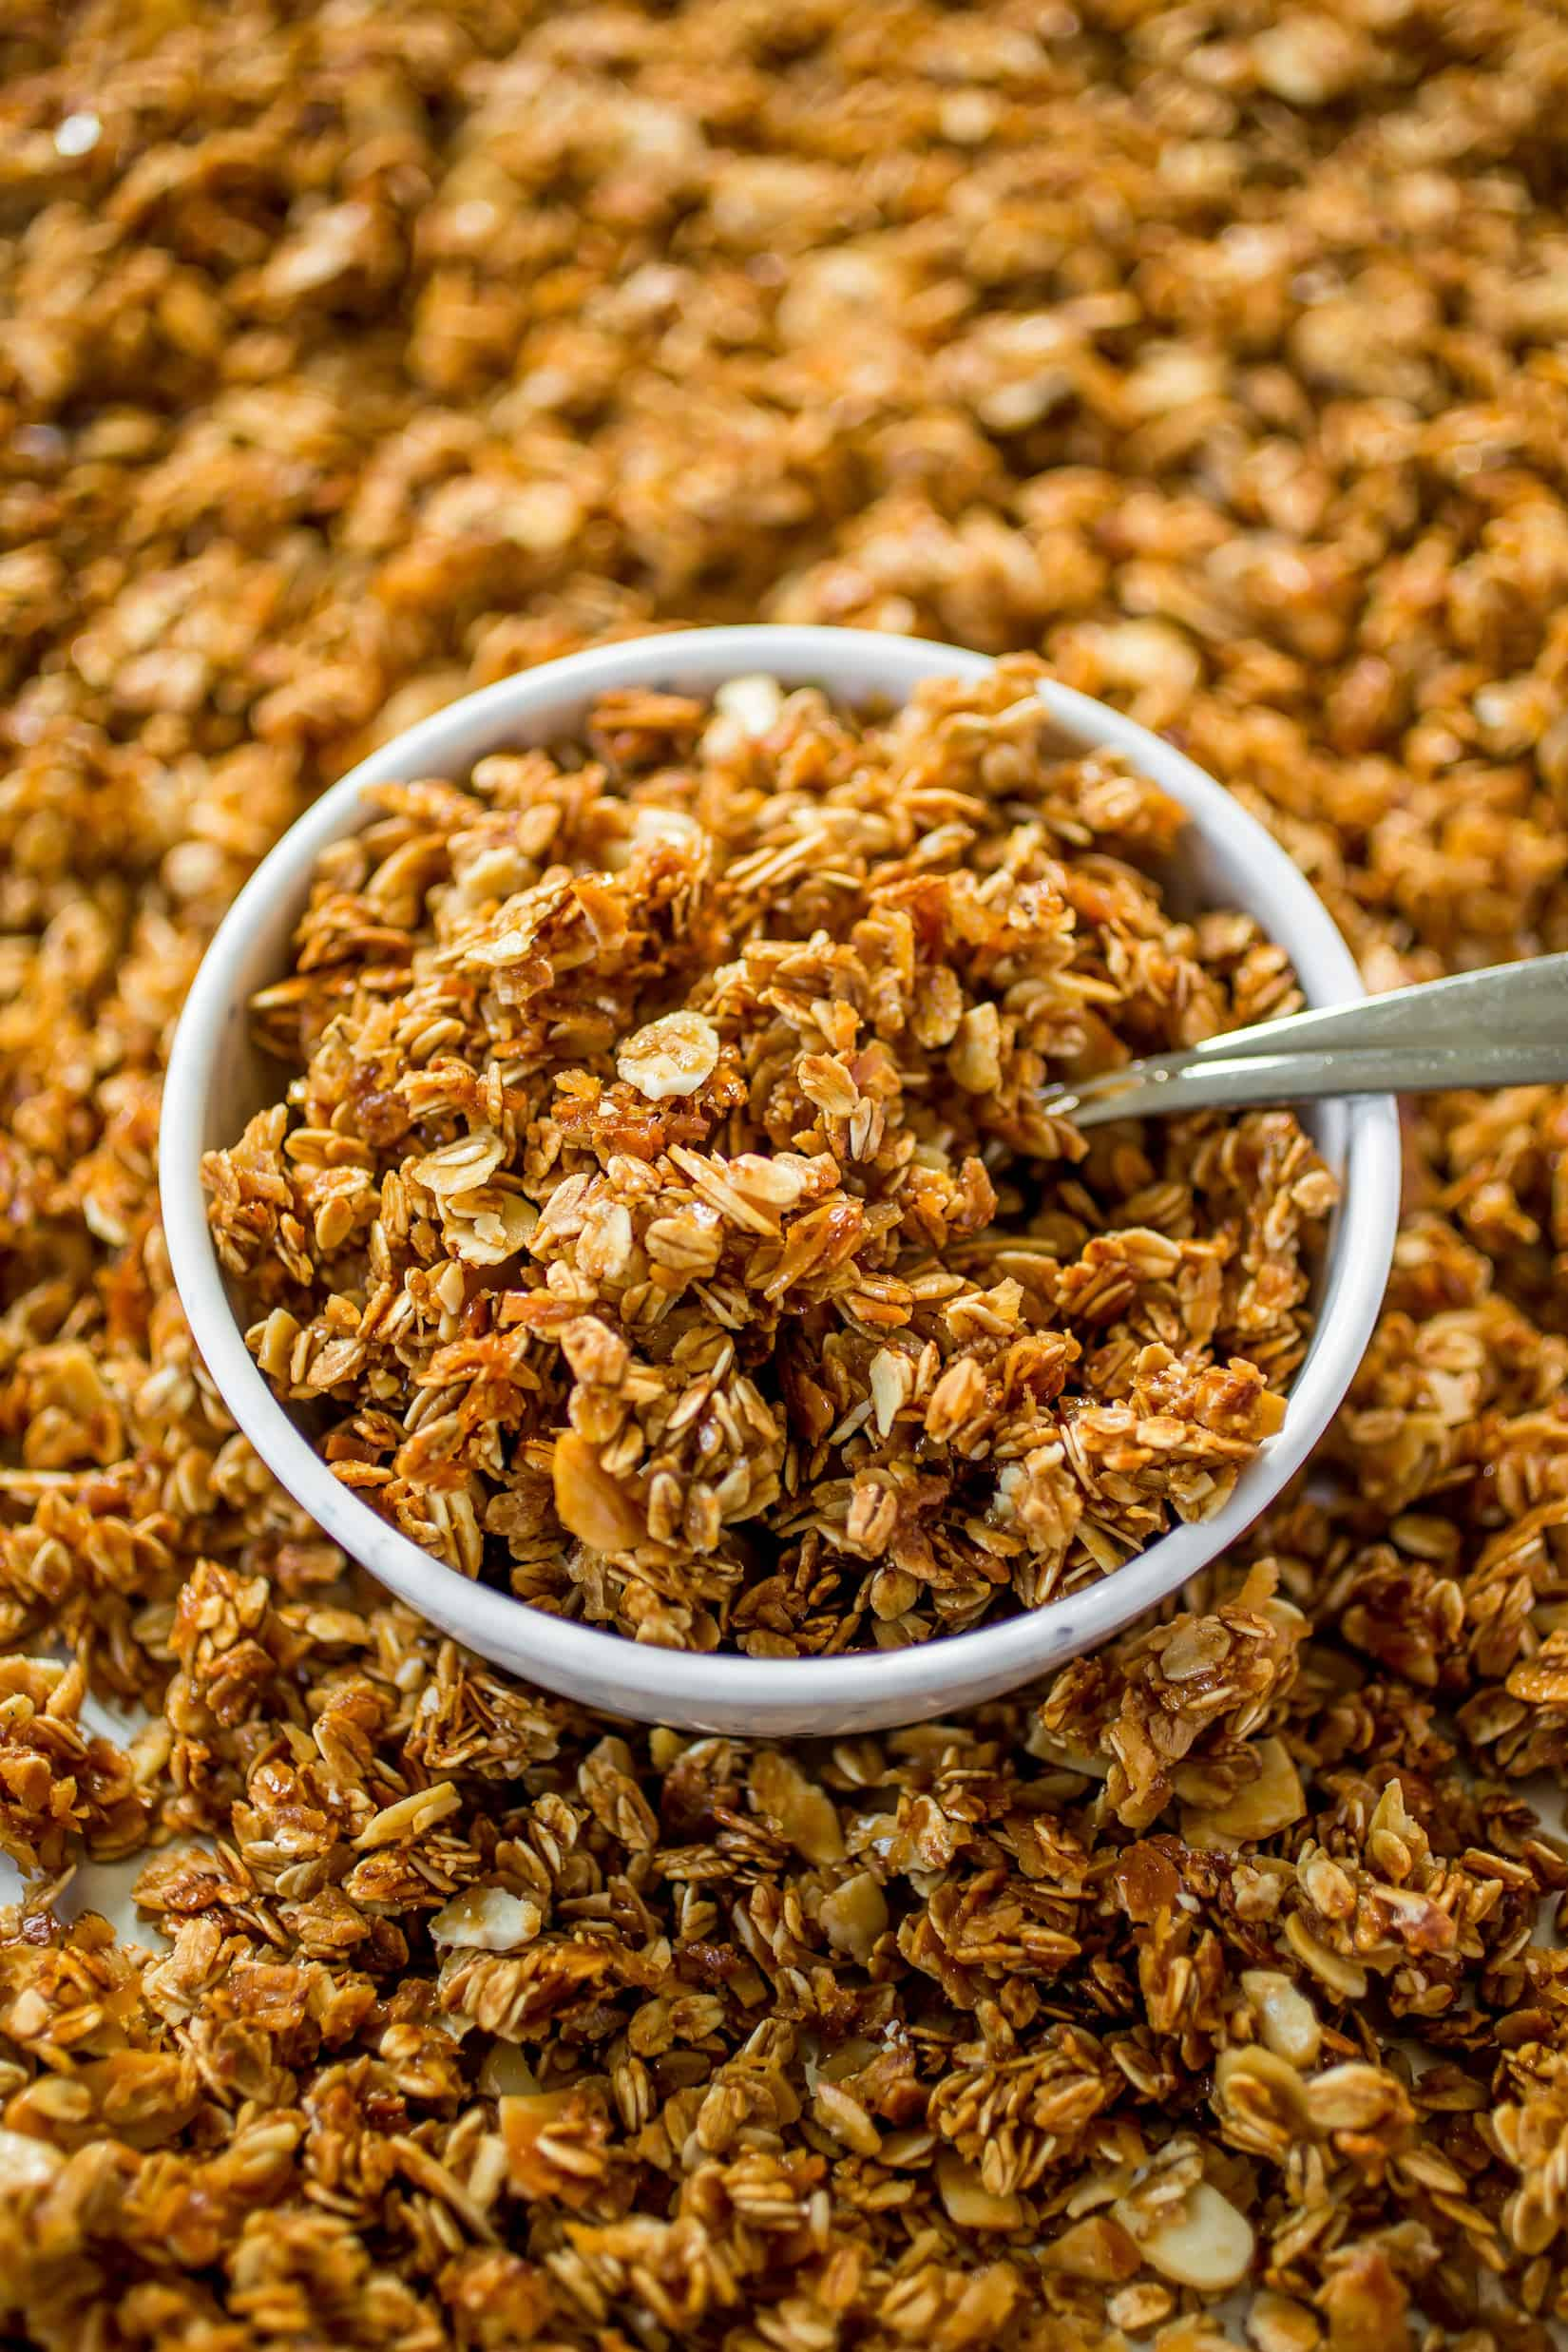 Vanilla Coconut Almond Granola - Flavors of vanilla, coconut and almond fill this healthier spin on granola!